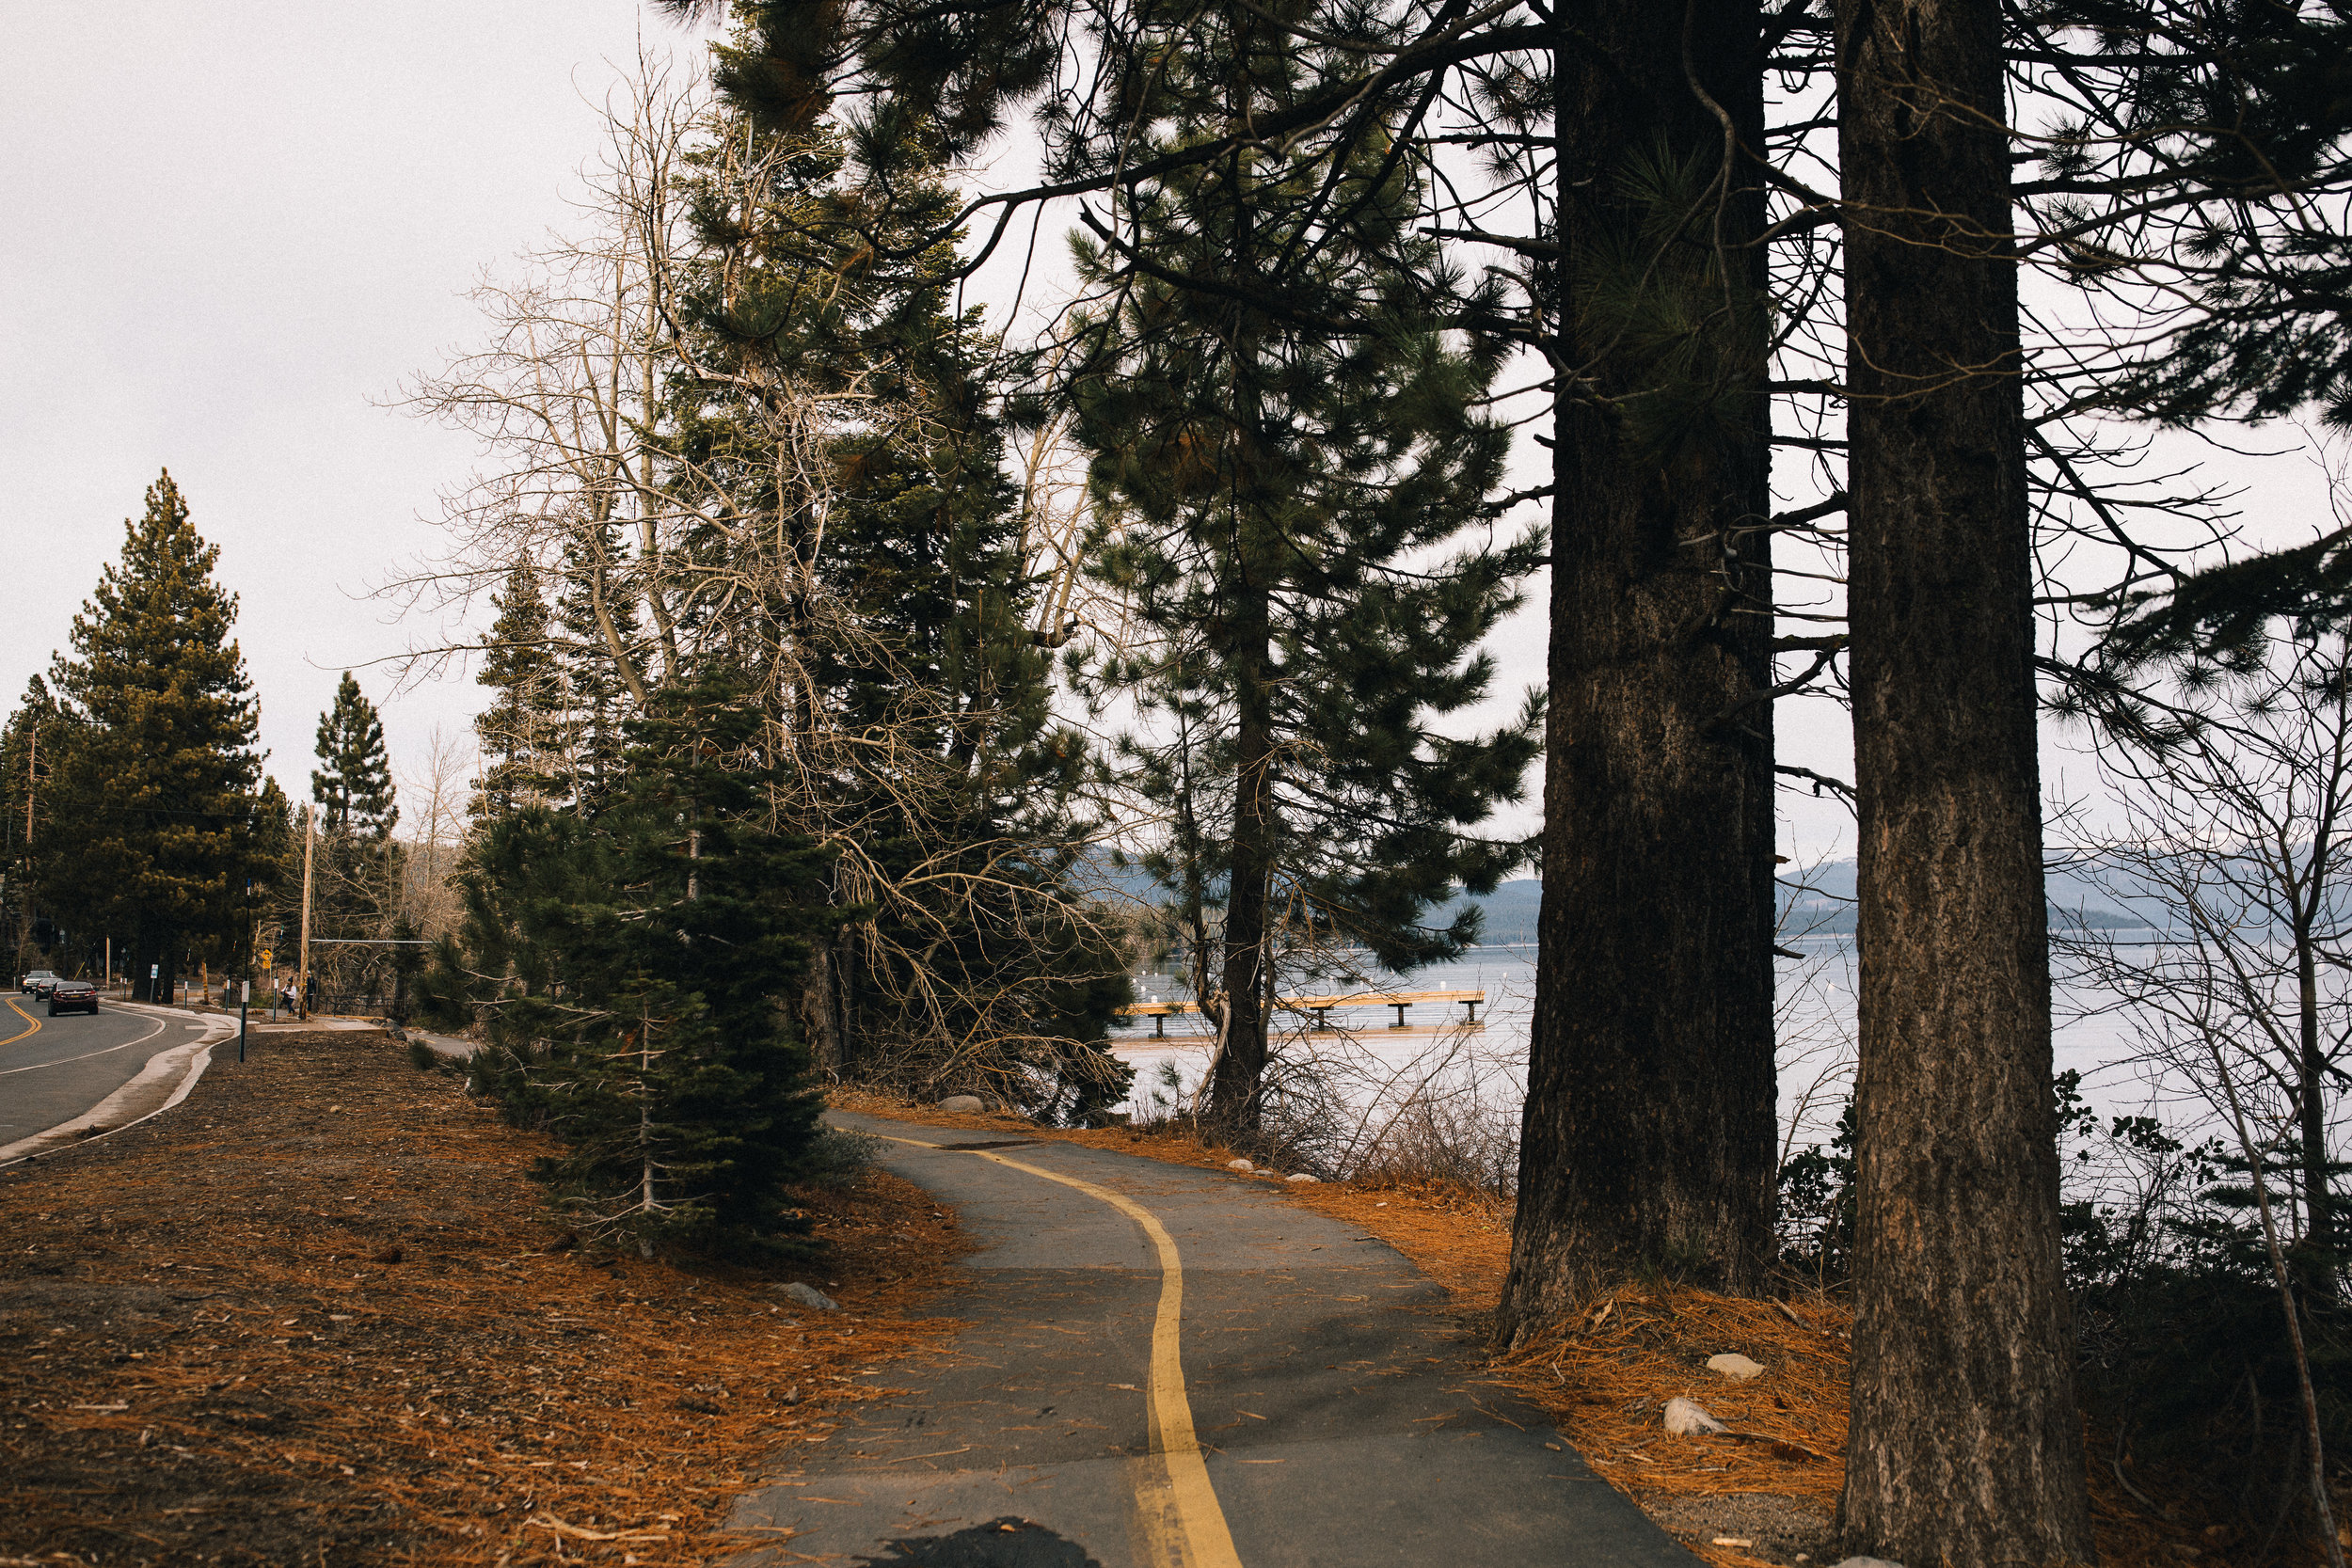 2018_01_01 Tahoe Trip 2018 Edited Full Resolution 0024.jpg